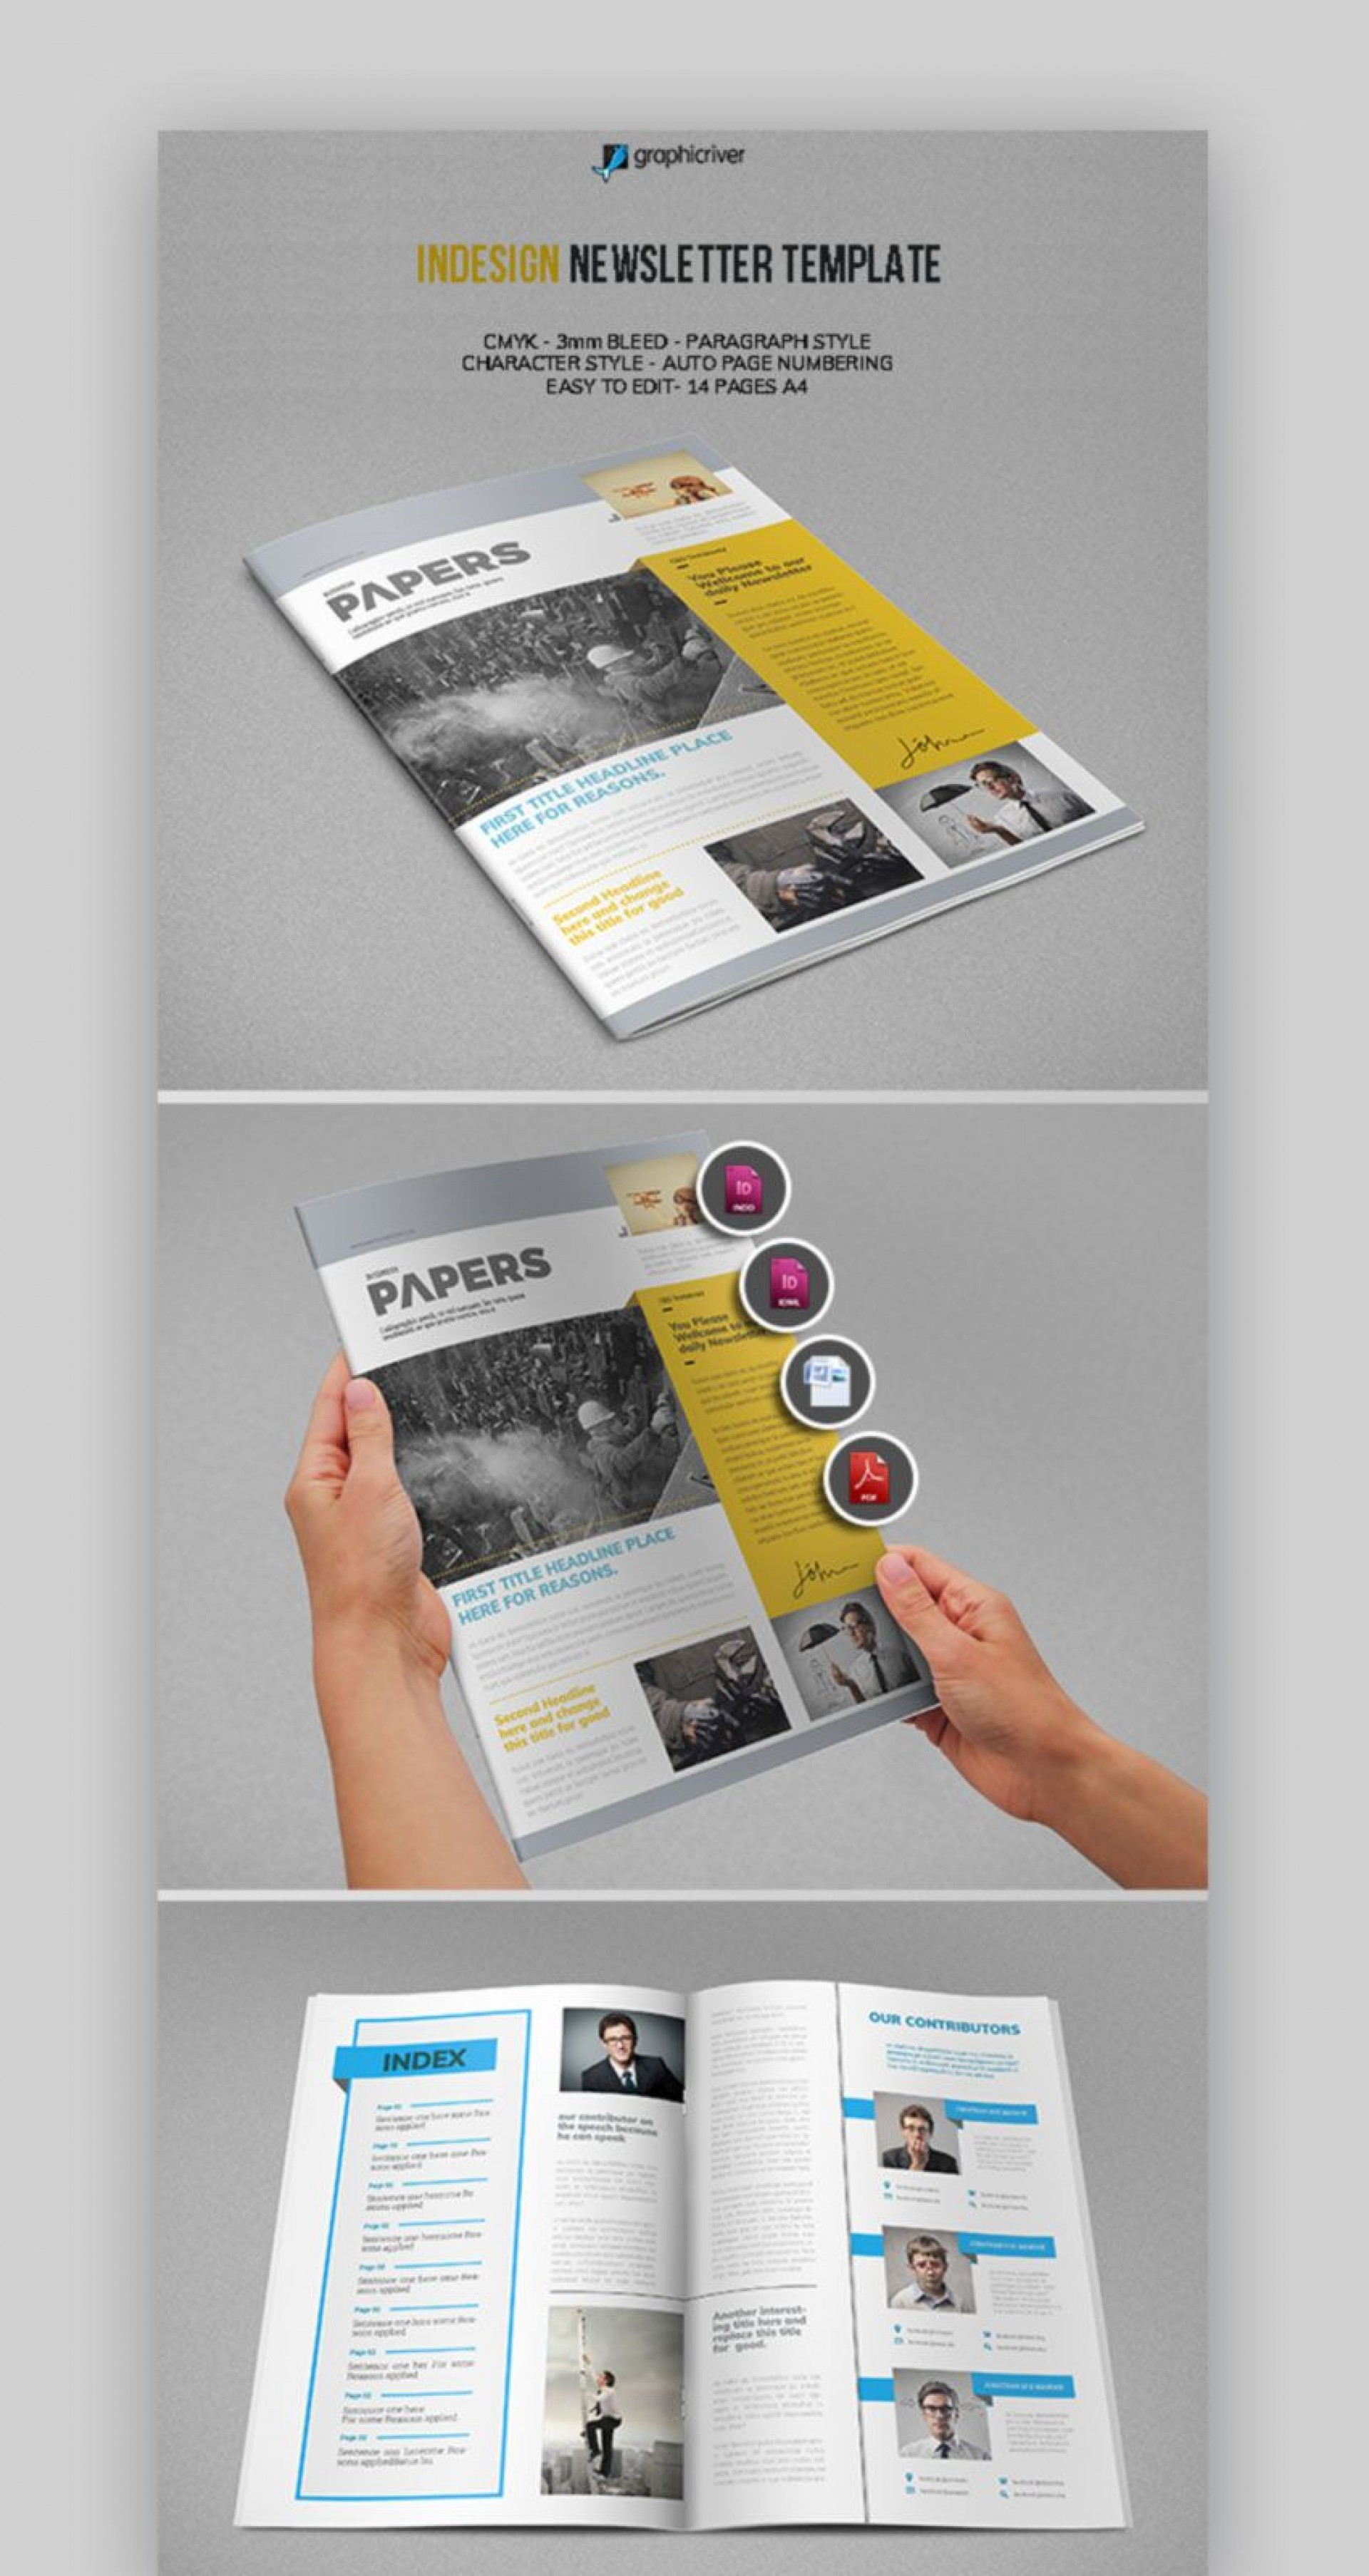 004 Dreaded Microsoft Office Newsletter Template High Resolution  Templates Publisher 365 Online1920